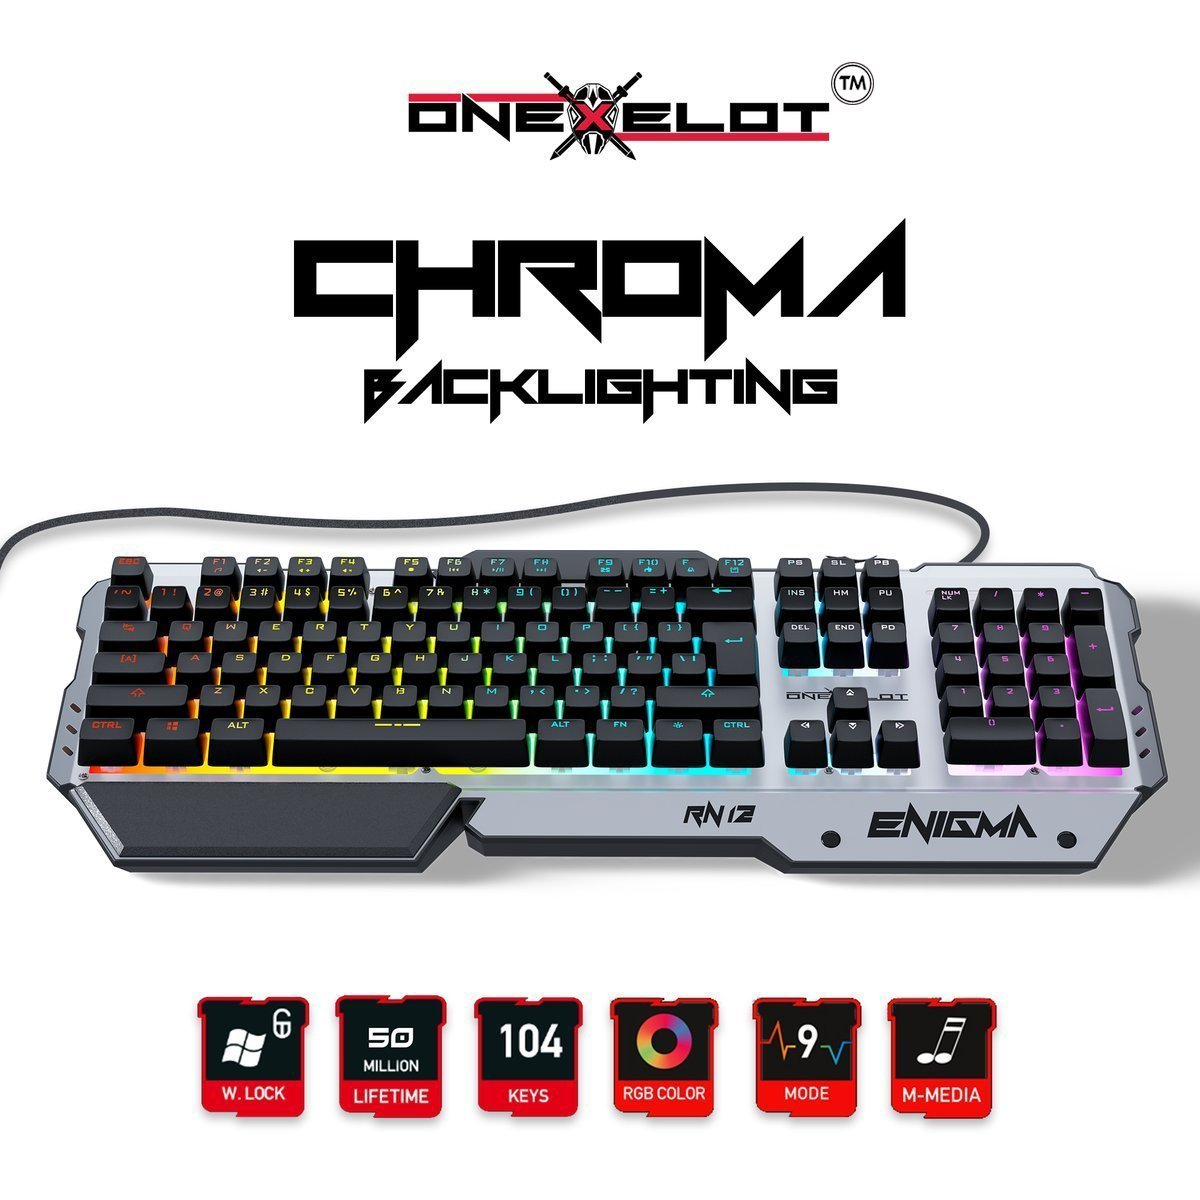 ONEXELOT Aluminum gaming keyboard, USB wired RGB backlit Revolutionary semi mechanical keyboard mod ENIGMA by ONEXELOT (Image #1)